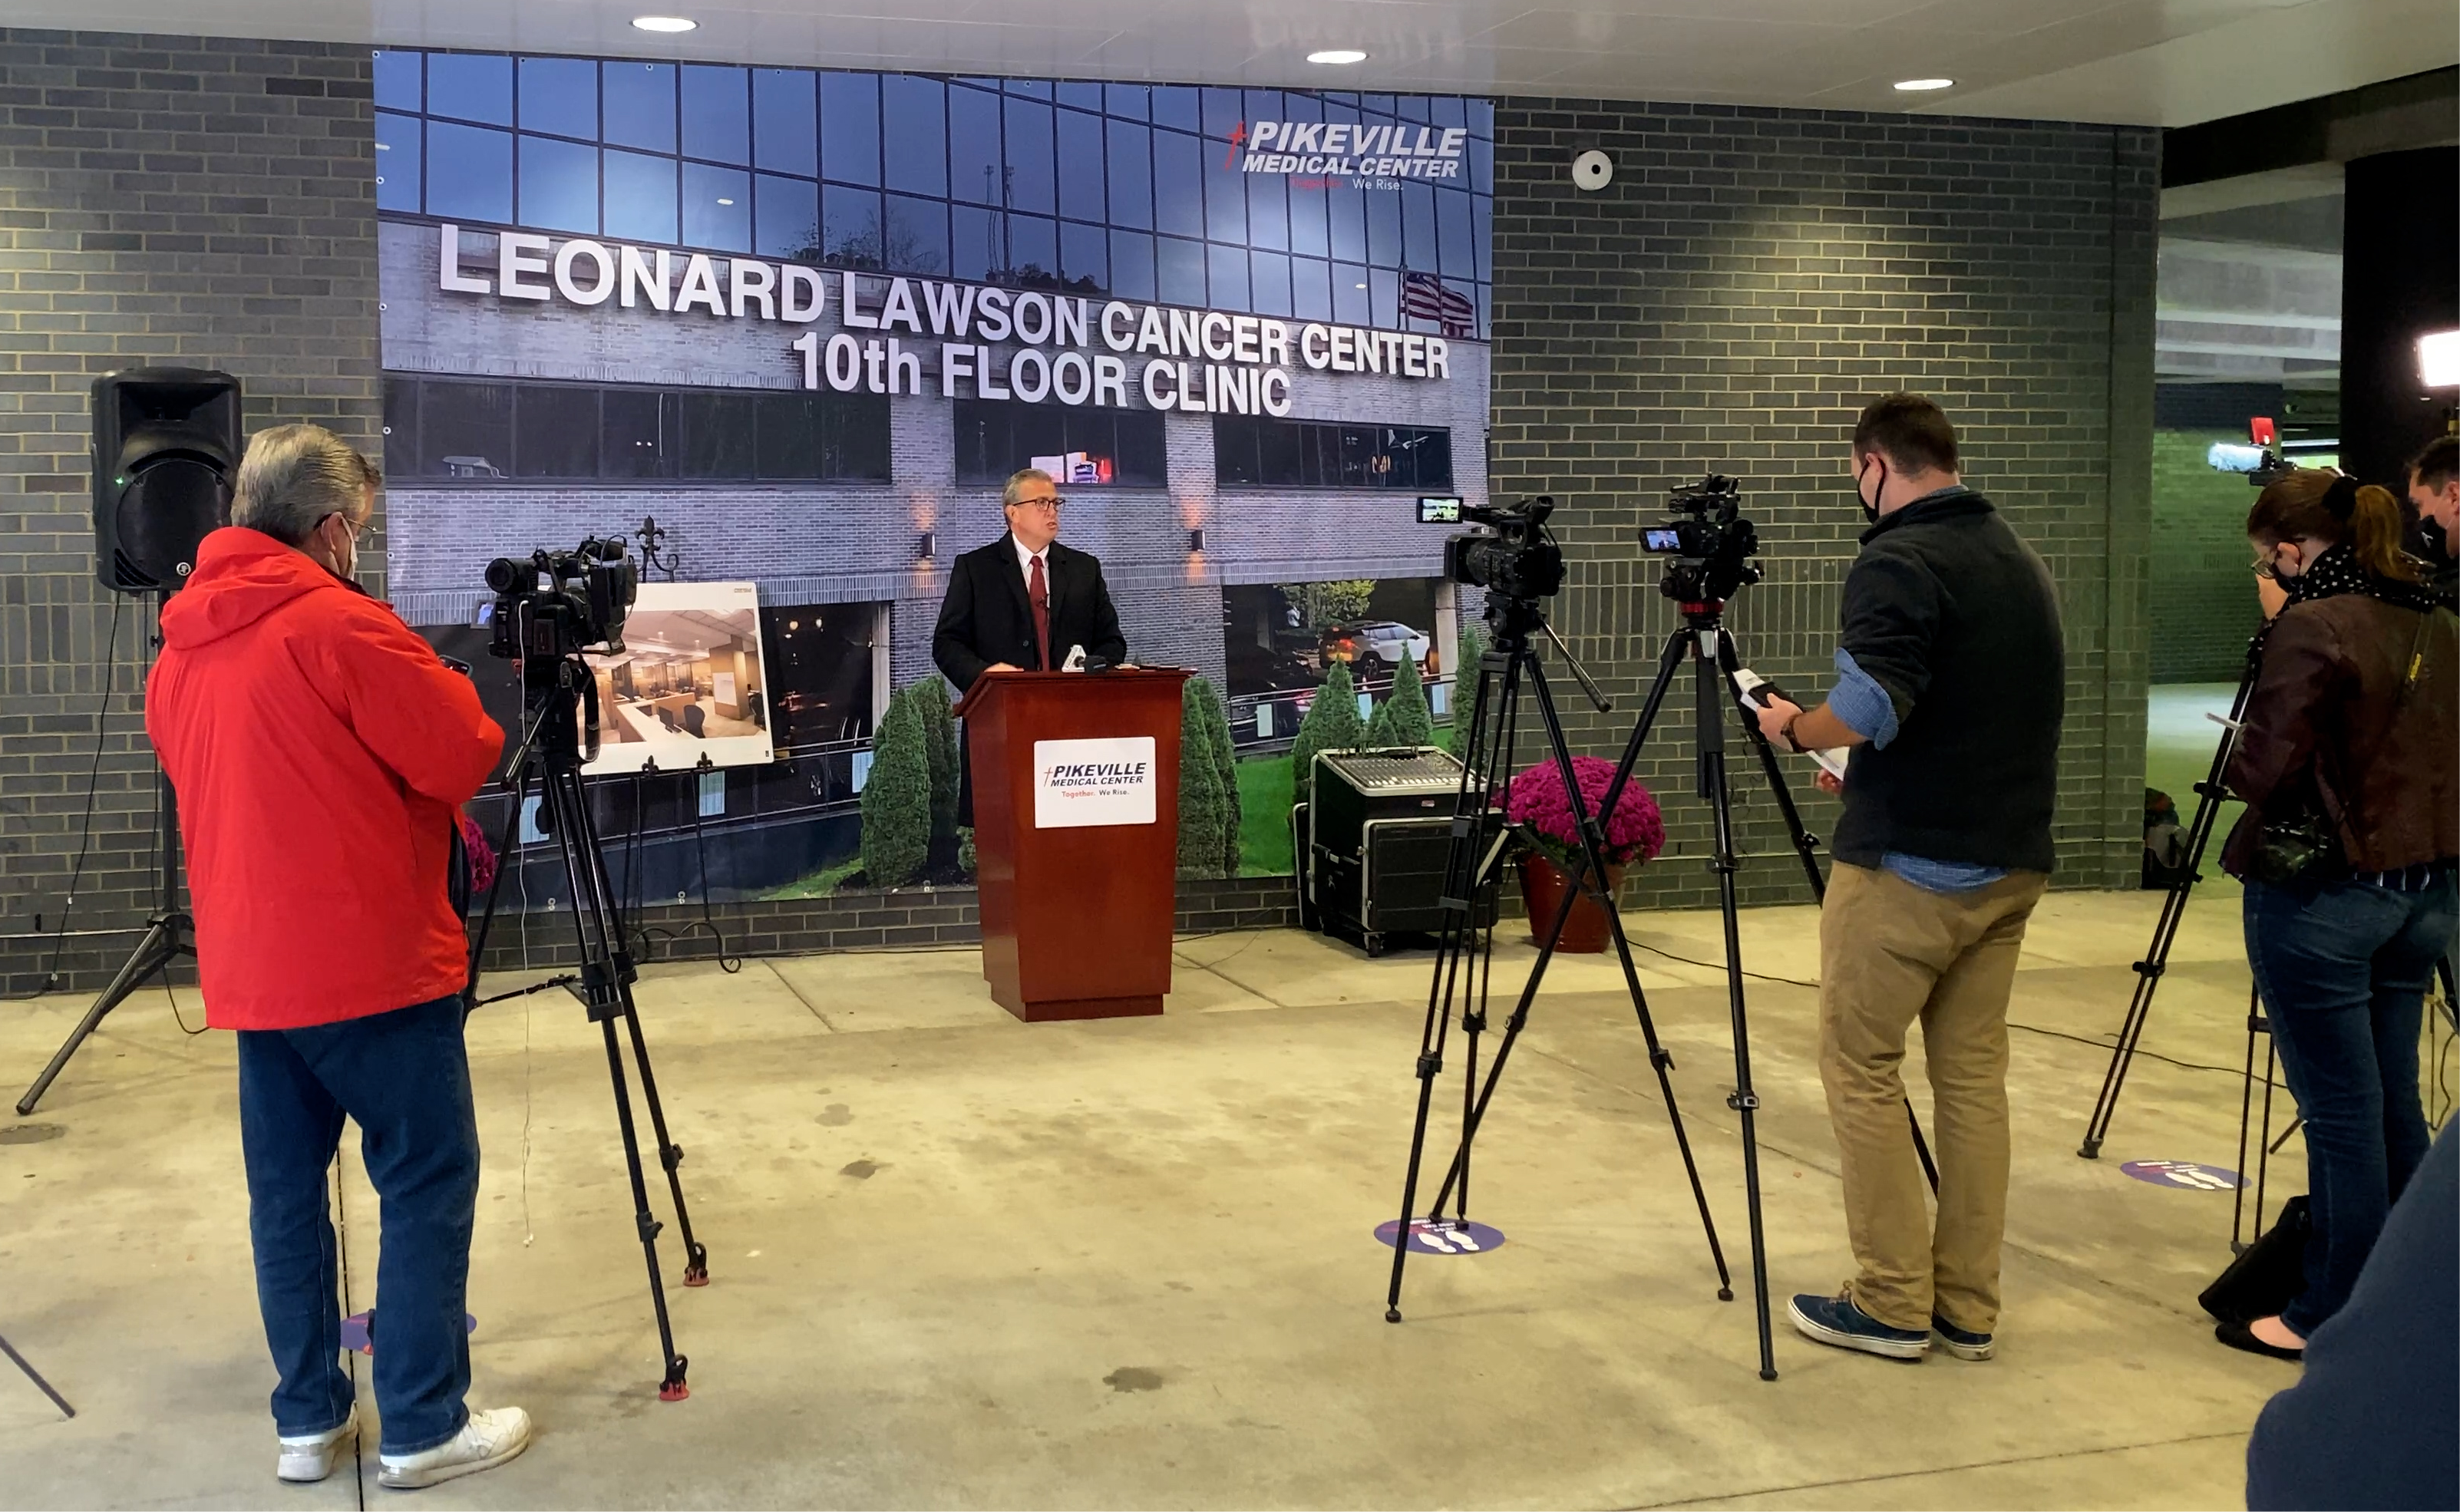 Pikeville Medical Center Receives AML Grant to Expand Leonard Lawson Cancer Center